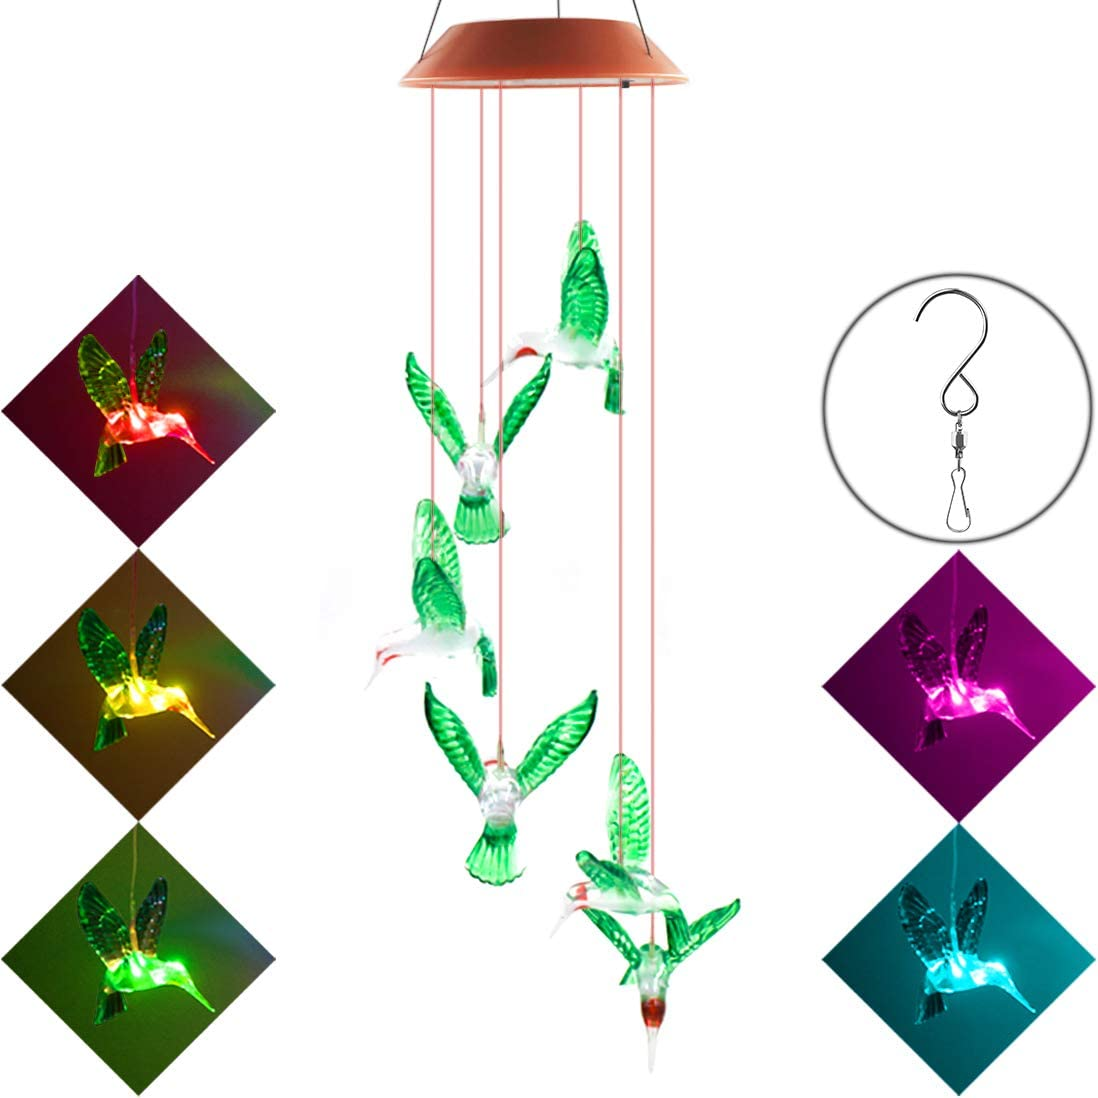 Xingpold Solar Hummingbird Wind Chime String Lights, Color Changing LED Mobile Hummingbird Wind Chimes, Waterproof Outdoor Solar Lights for Christmas Home Yard Patio Garden Decoration.